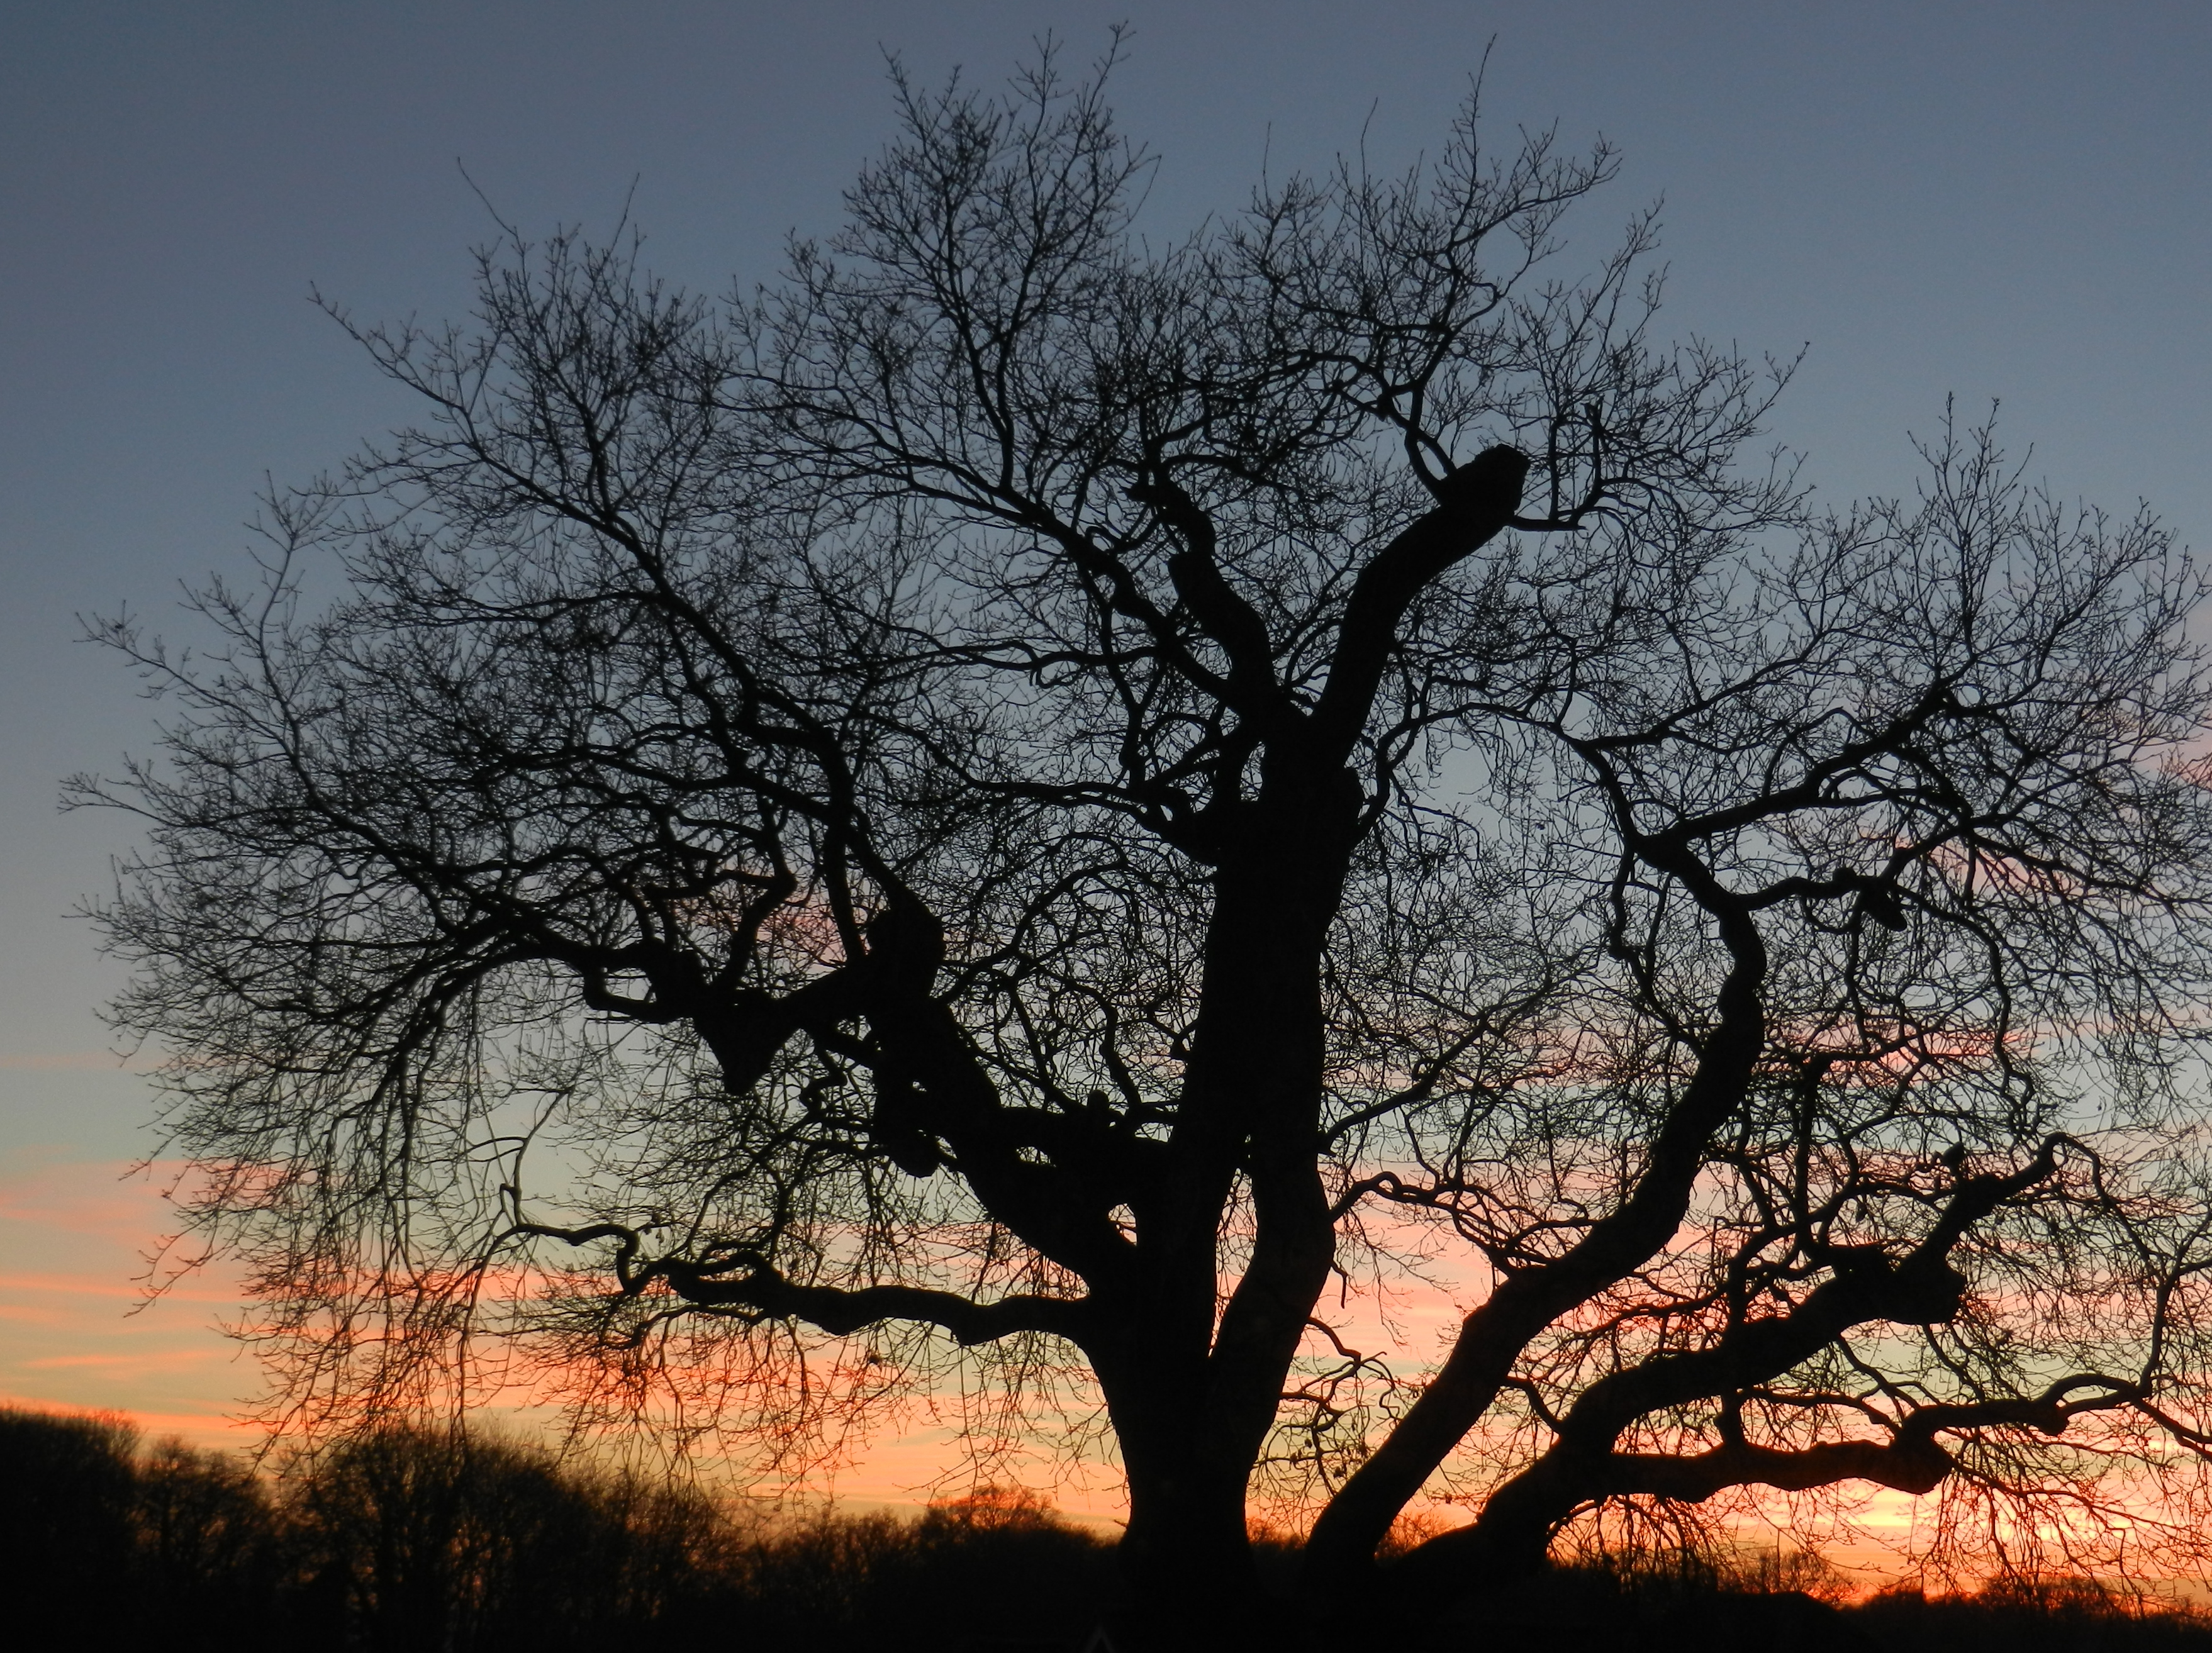 Photo of a tree in silhouette against a winter sky